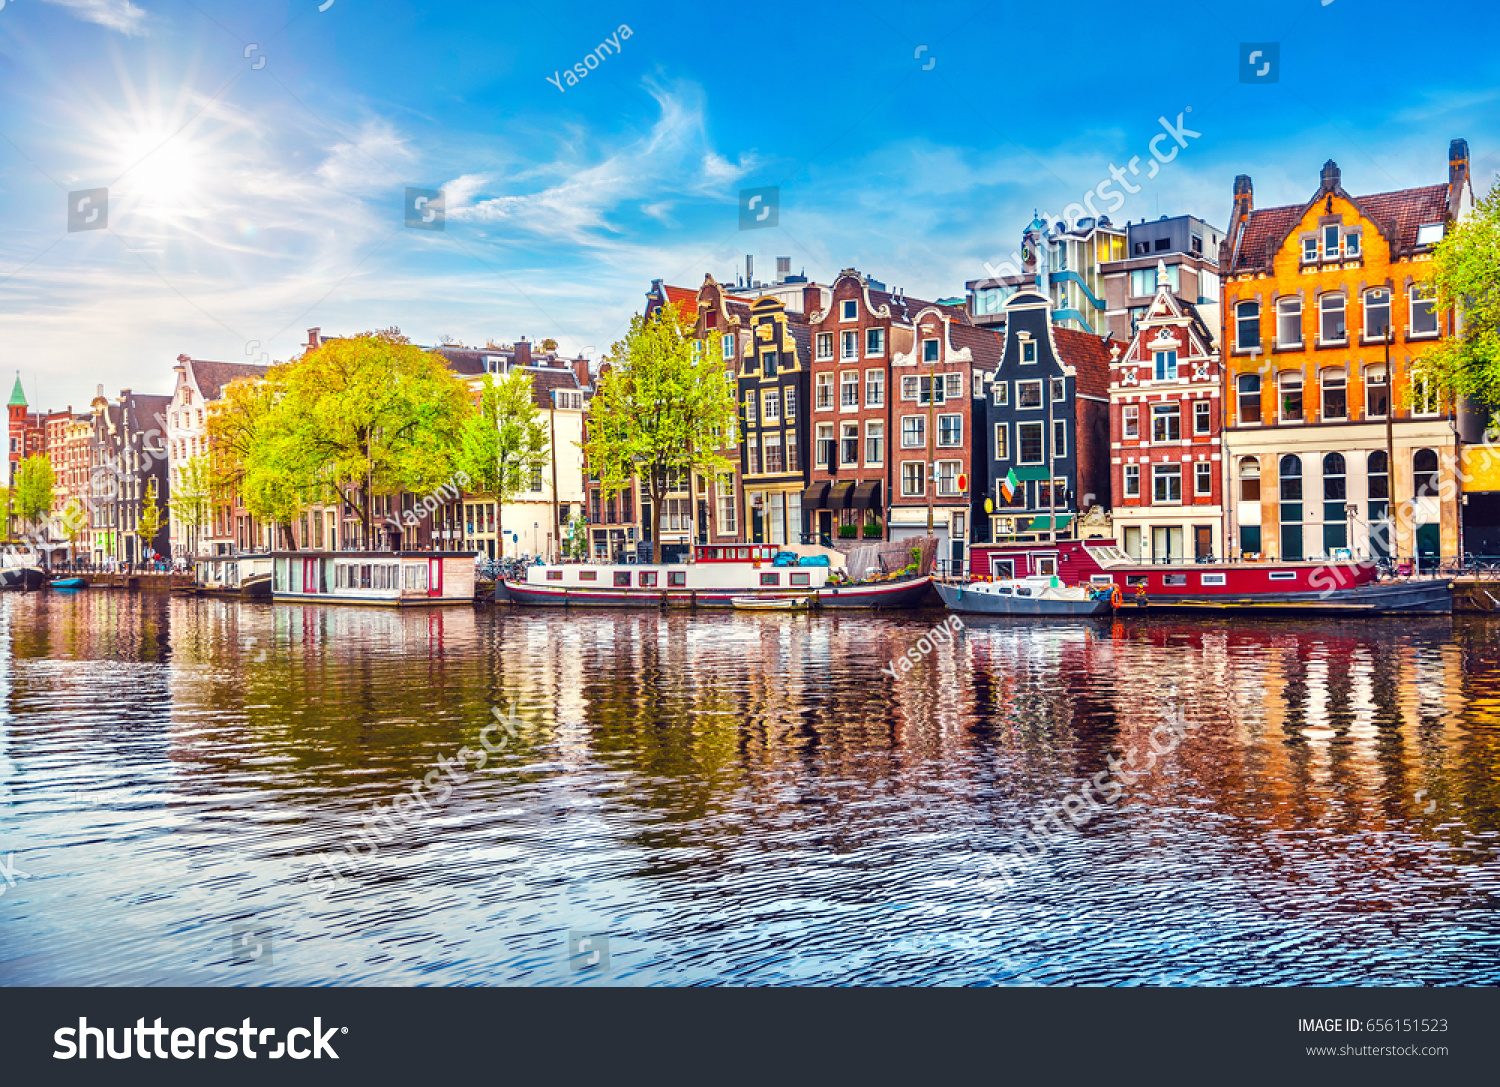 Amsterdam Netherlands dancing houses over river Amstel landmark in old european city spring landscape. #656151523